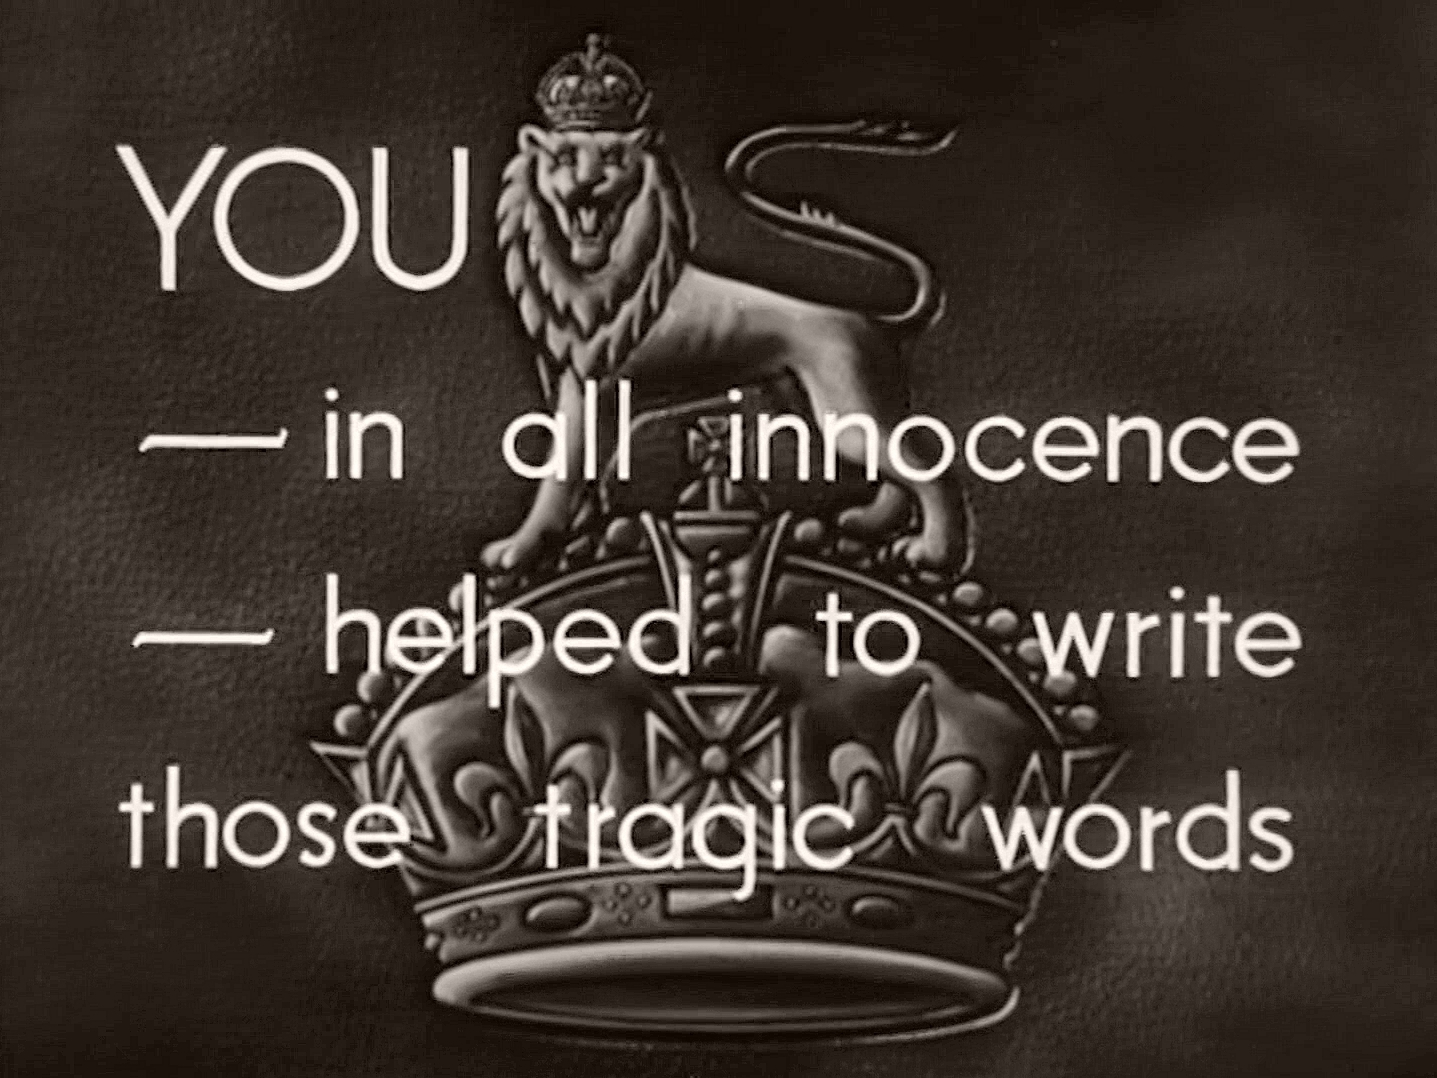 Main title from The Next of Kin (1942) (3). YOU – in all innocence – helped to write those tragic words